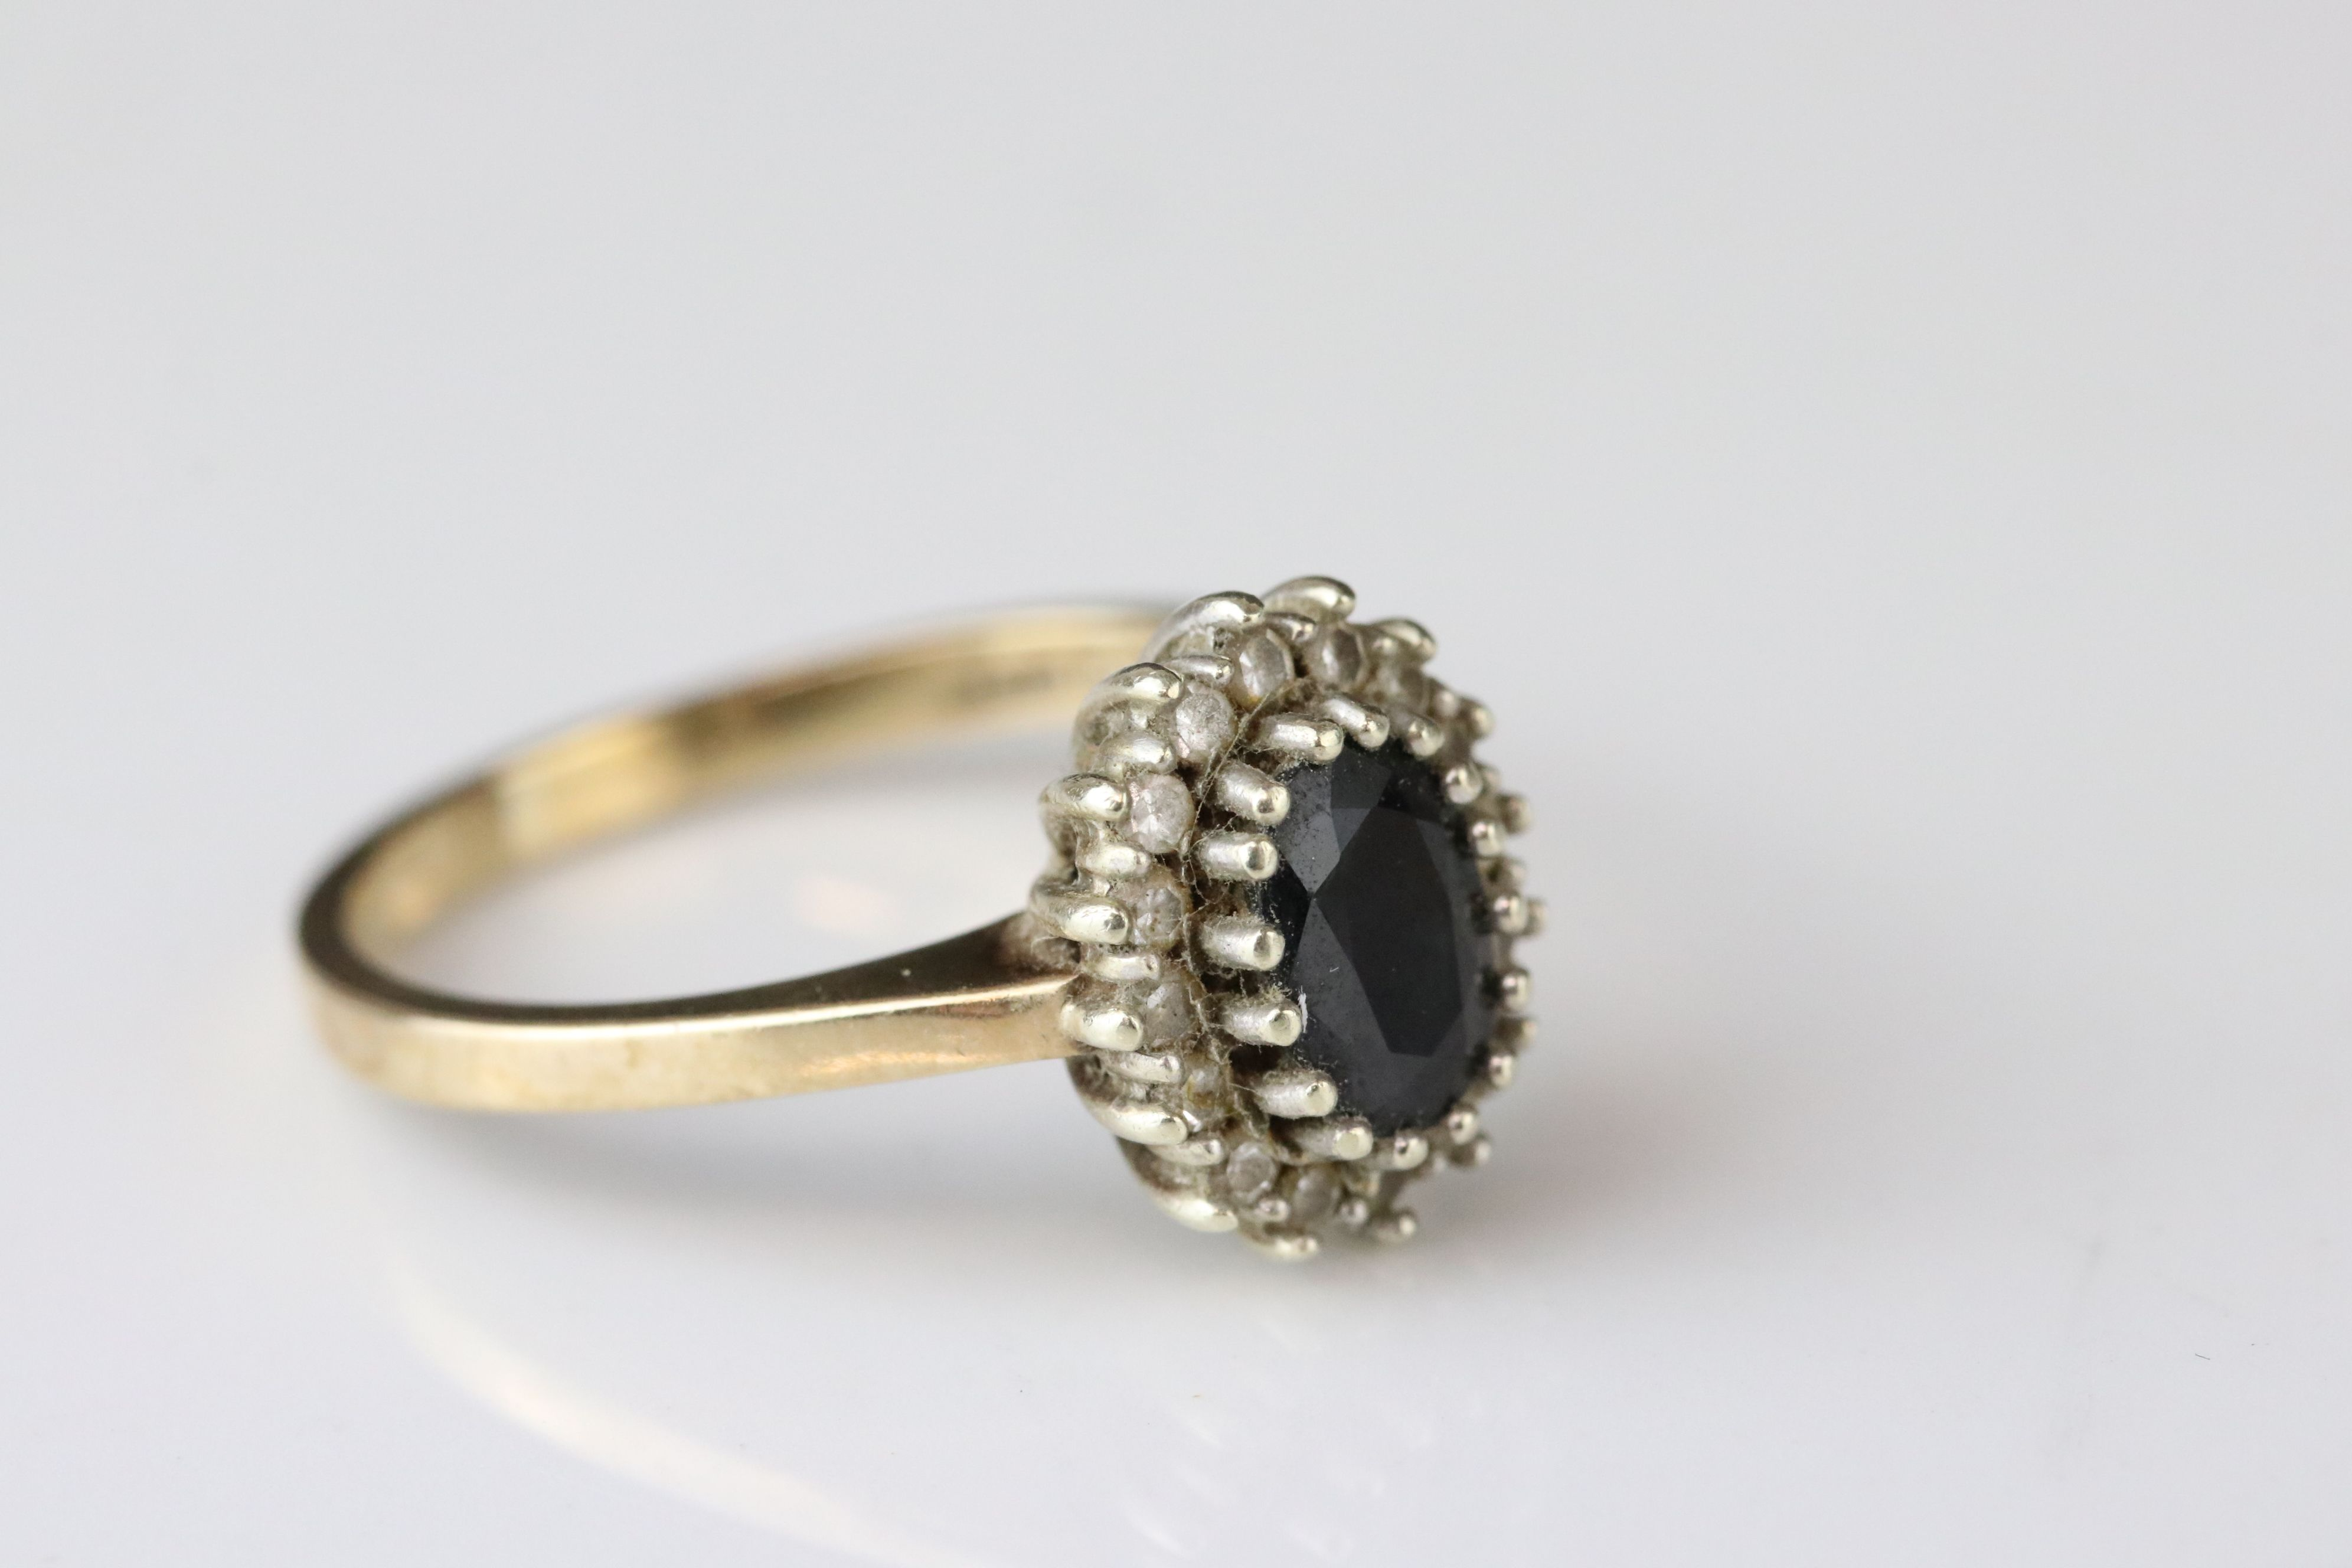 Sapphire 9ct yellow gold cluster ring, together with black sapphire and white stone 9ct yellow - Image 4 of 5